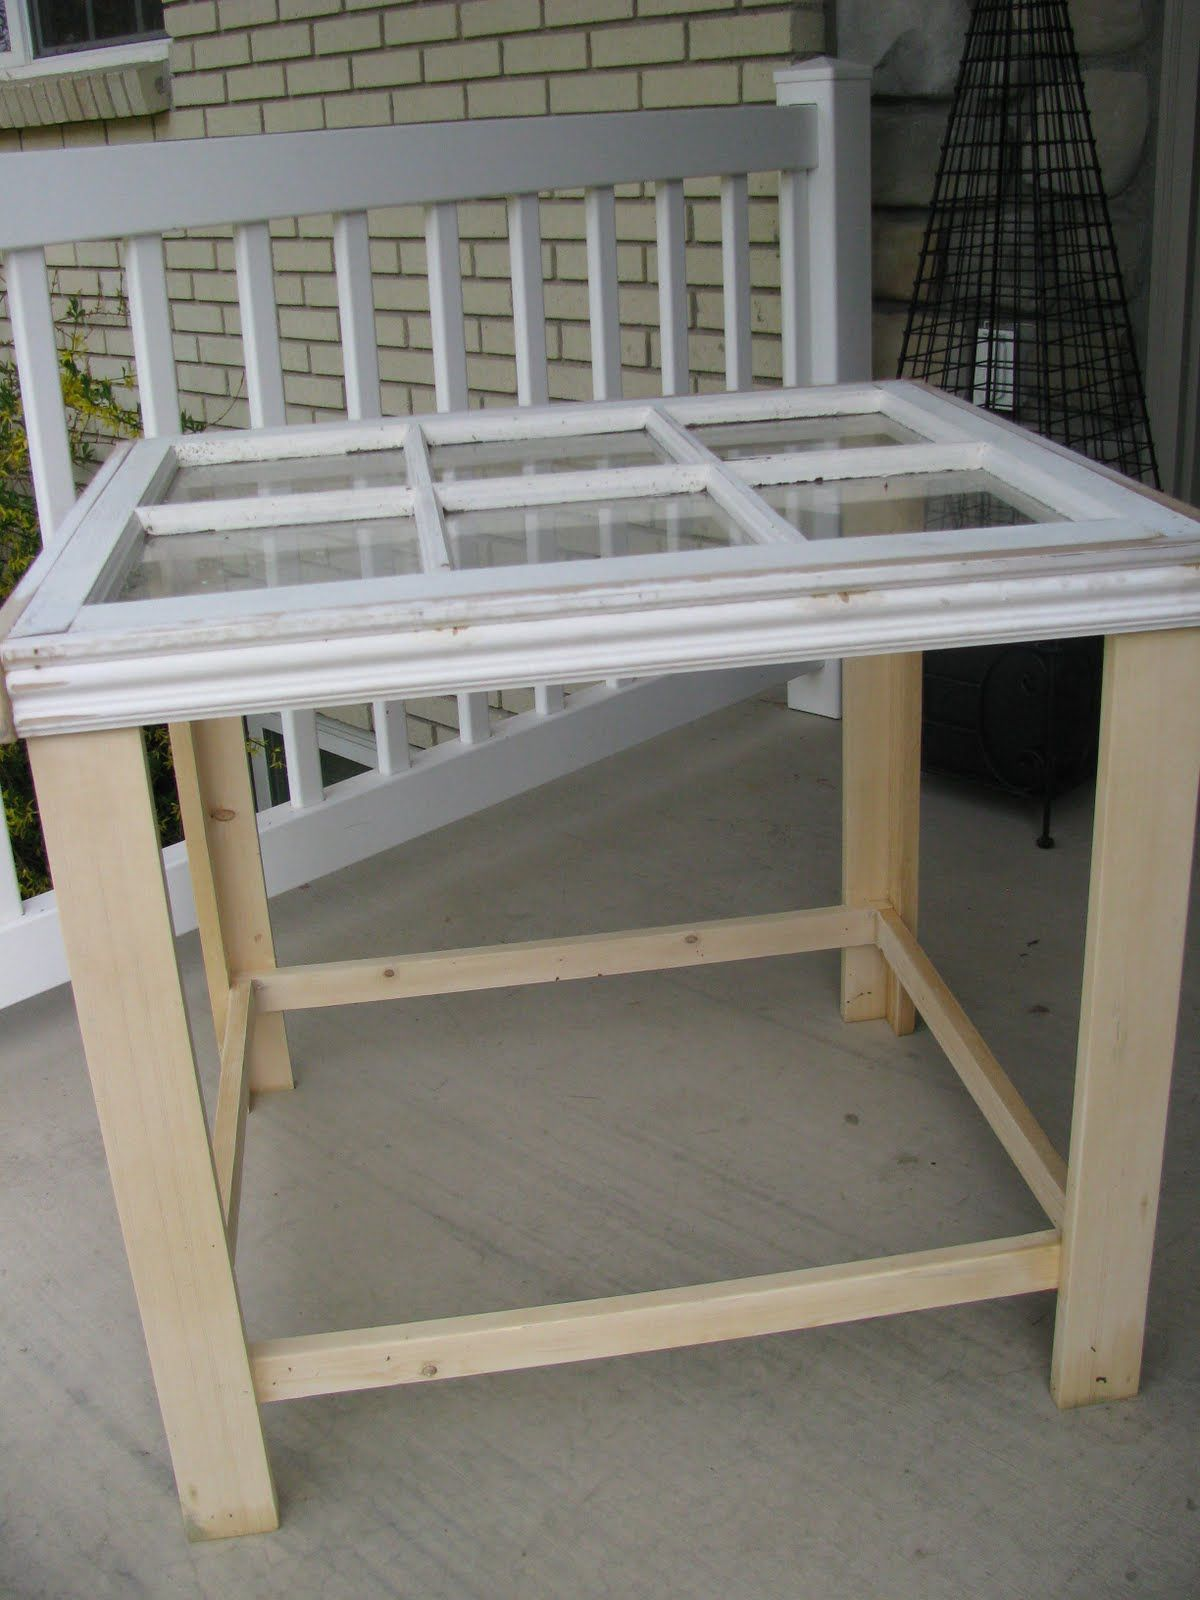 Window pane ideas  build a window pane table perfect idea for the window i have